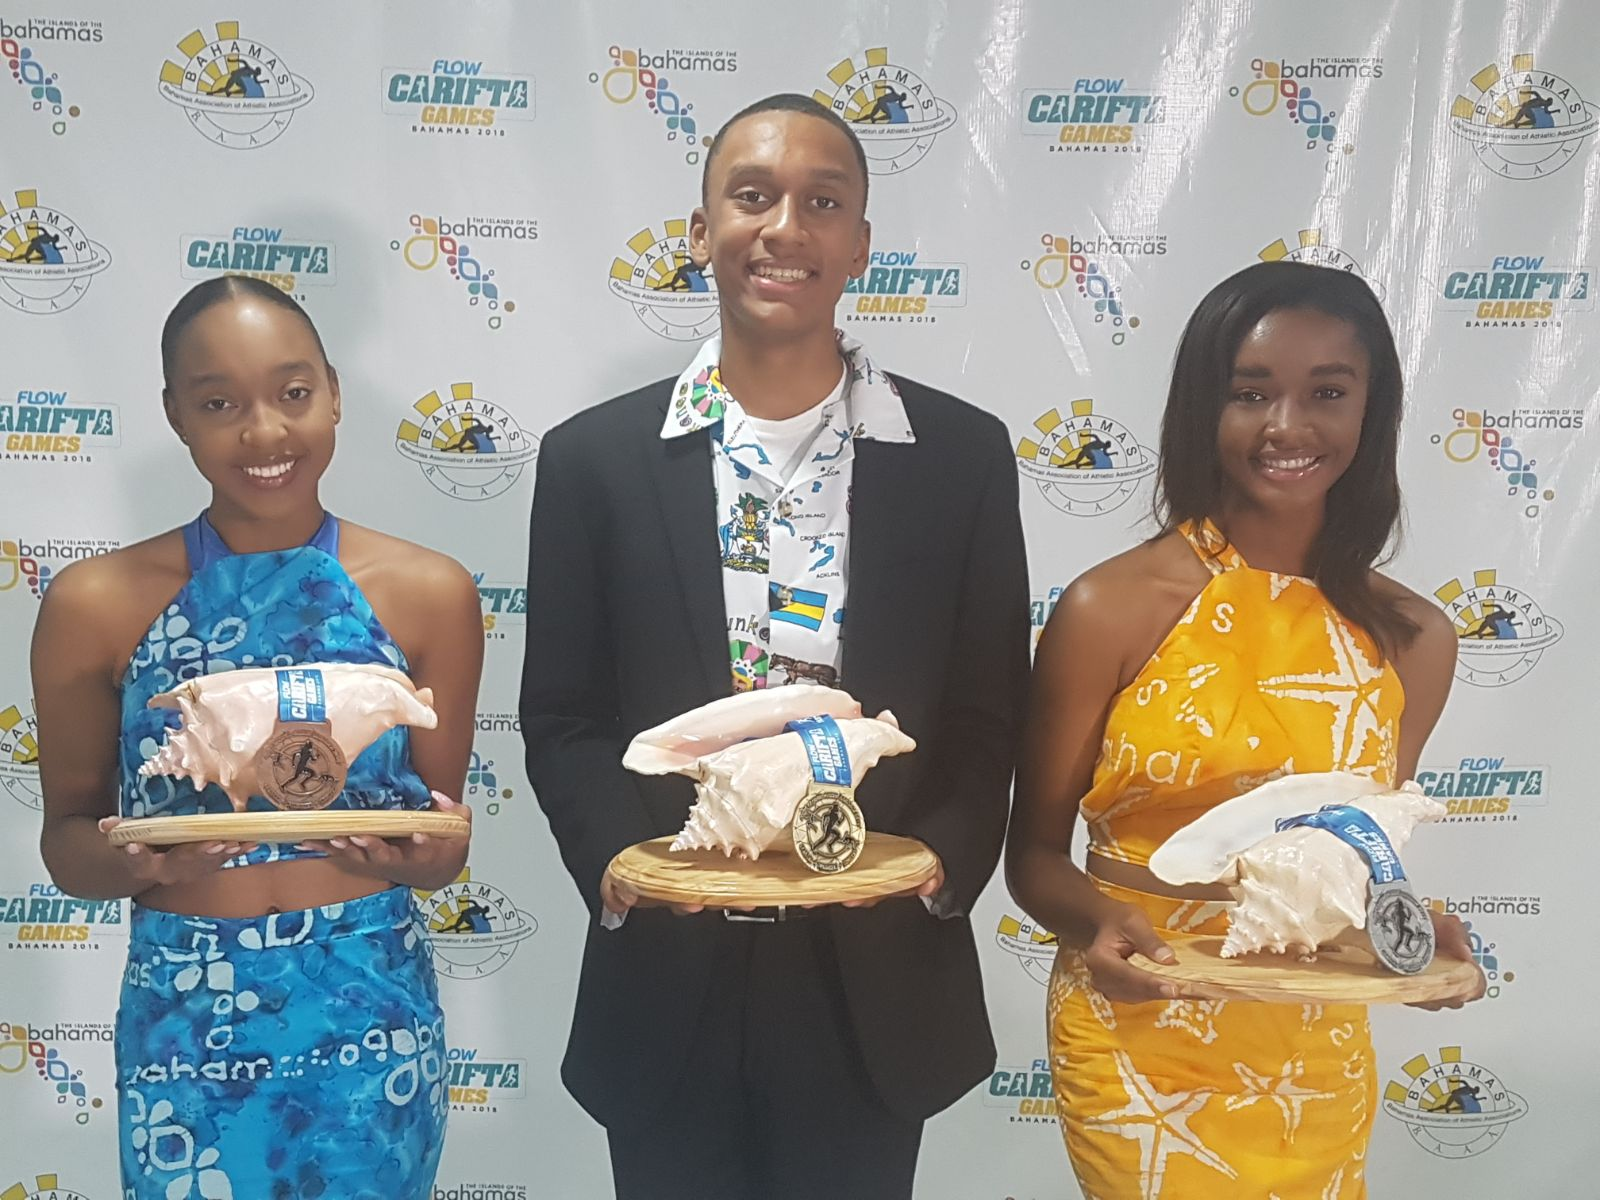 CARIFTA championships begin this weekend